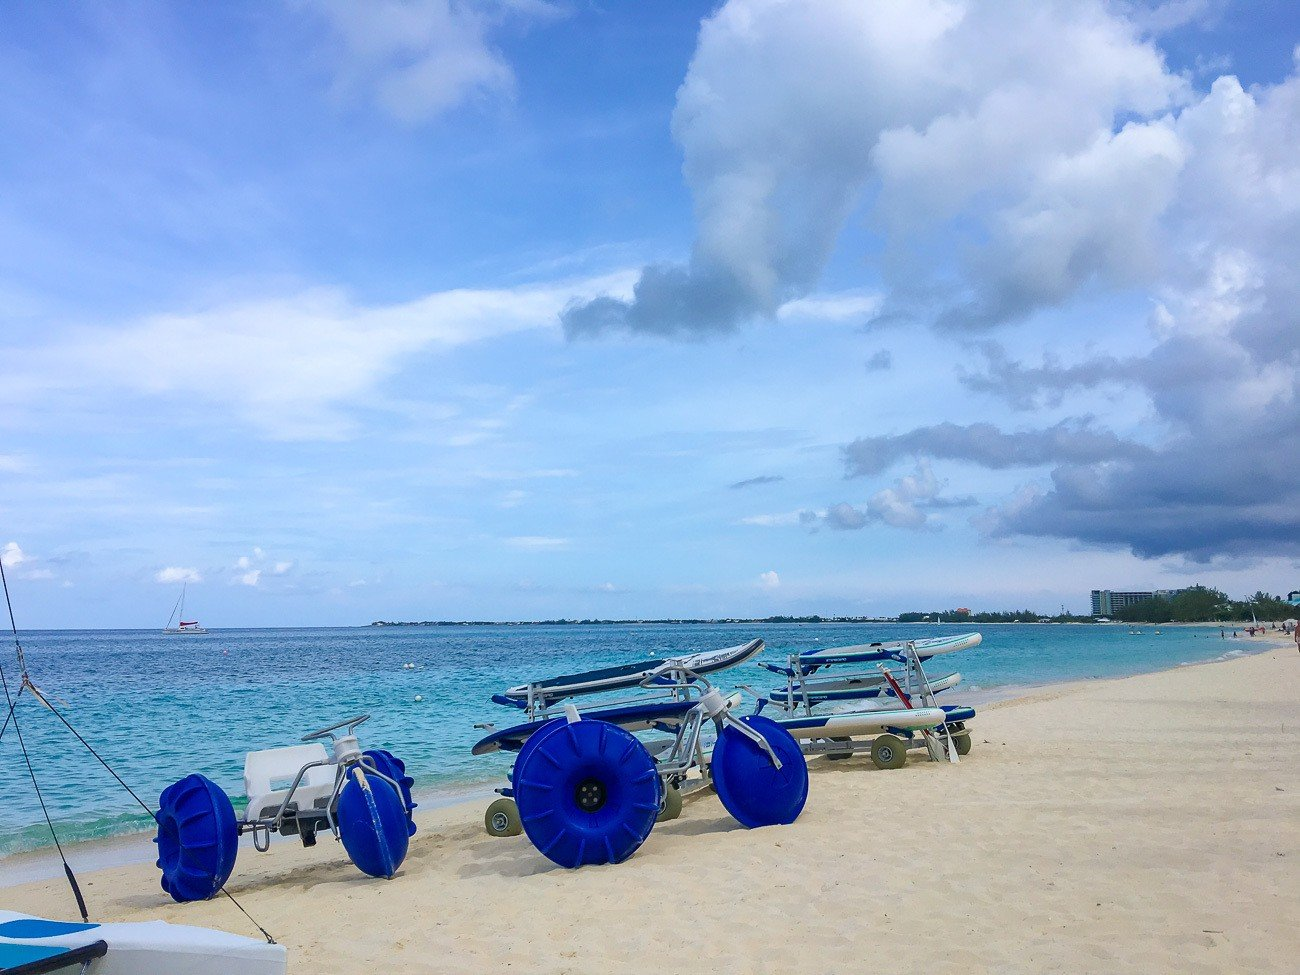 Guests of The Ritz-Carlton, Grand Cayman have access to a variety of onsite water sports.